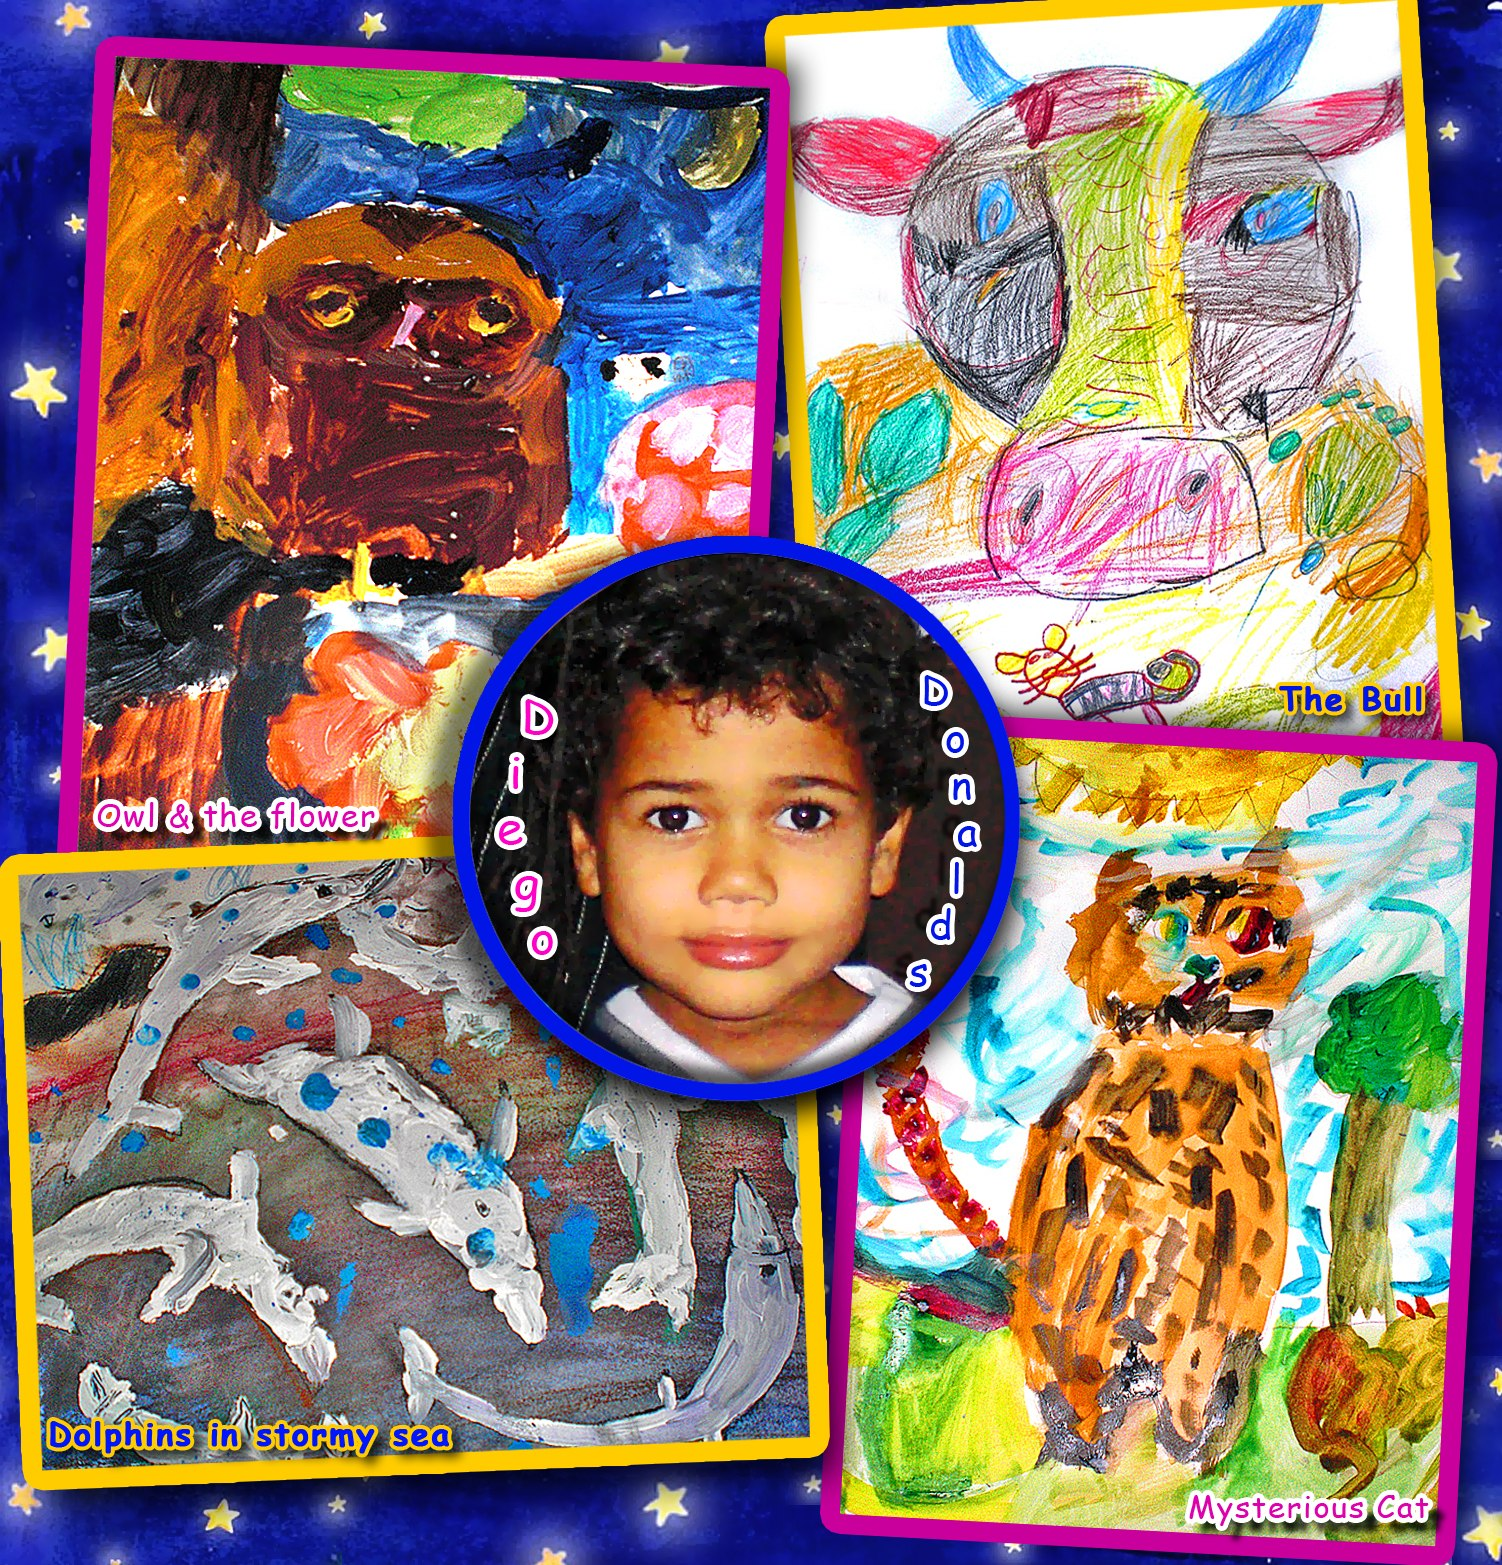 Diego's paintings when he was 4 y.o.